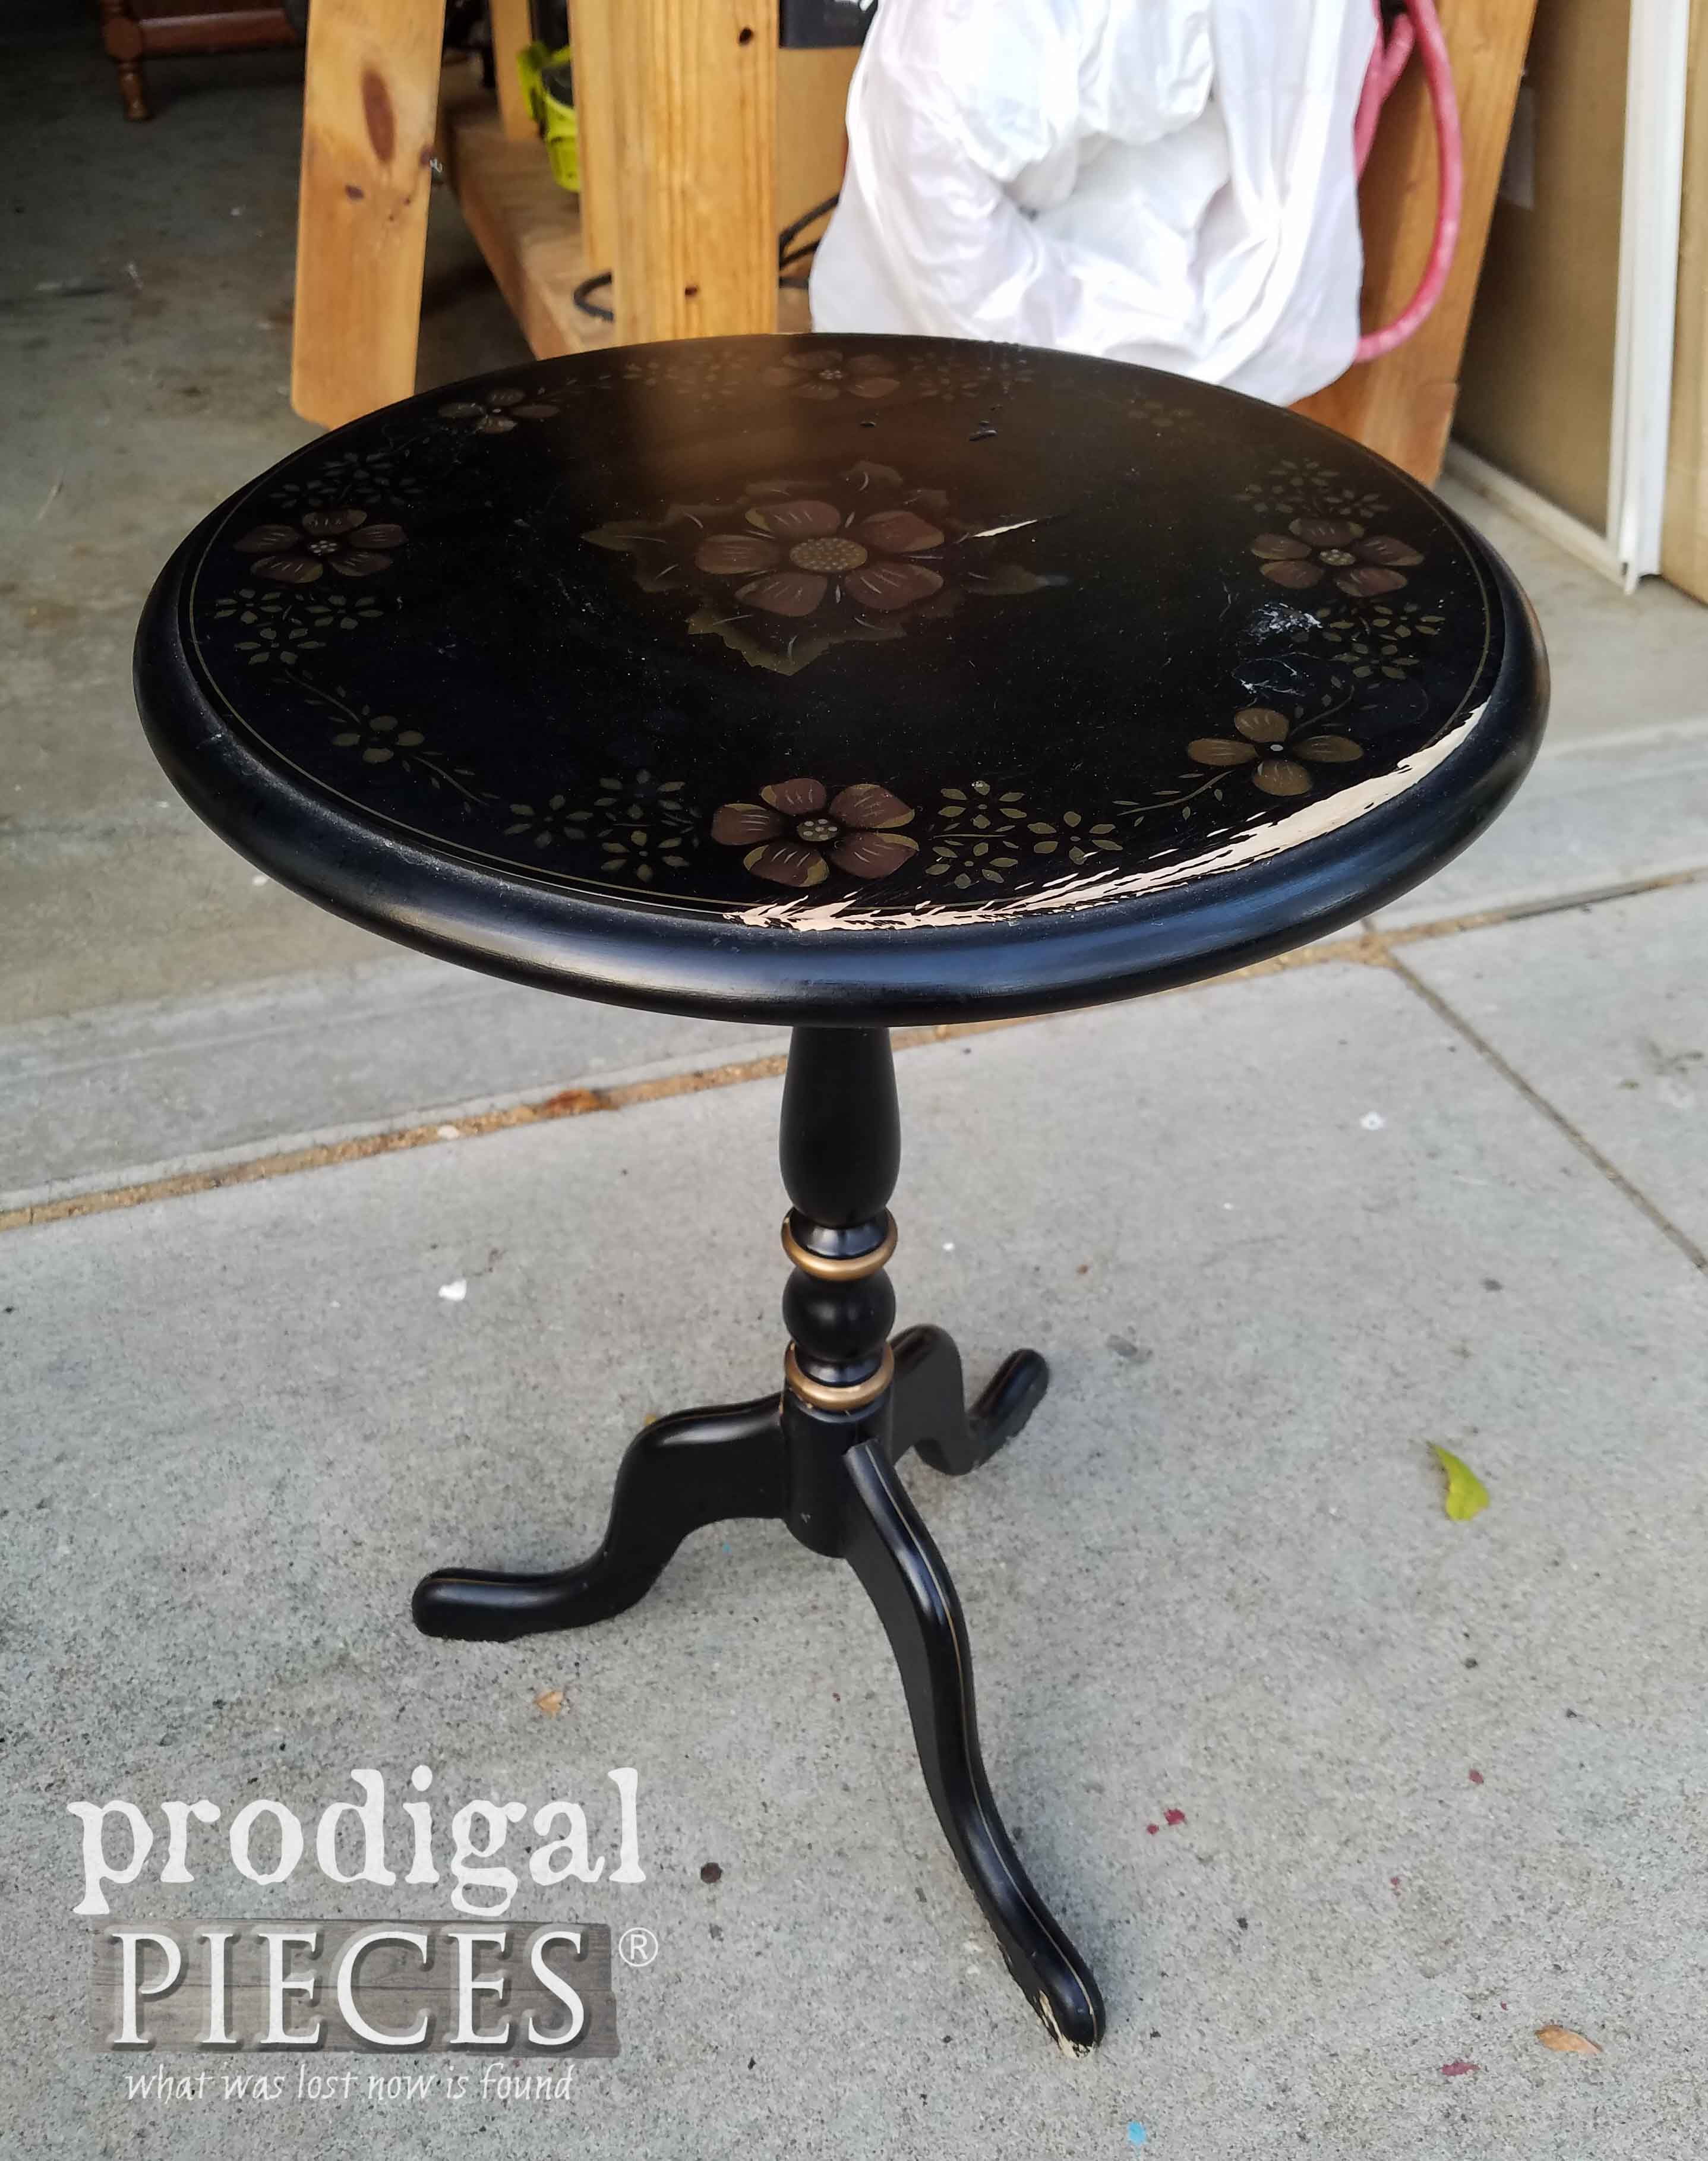 Vintage Ethan Allen Table Before Makeover by Prodigal Pieces | prodigalpieces.com